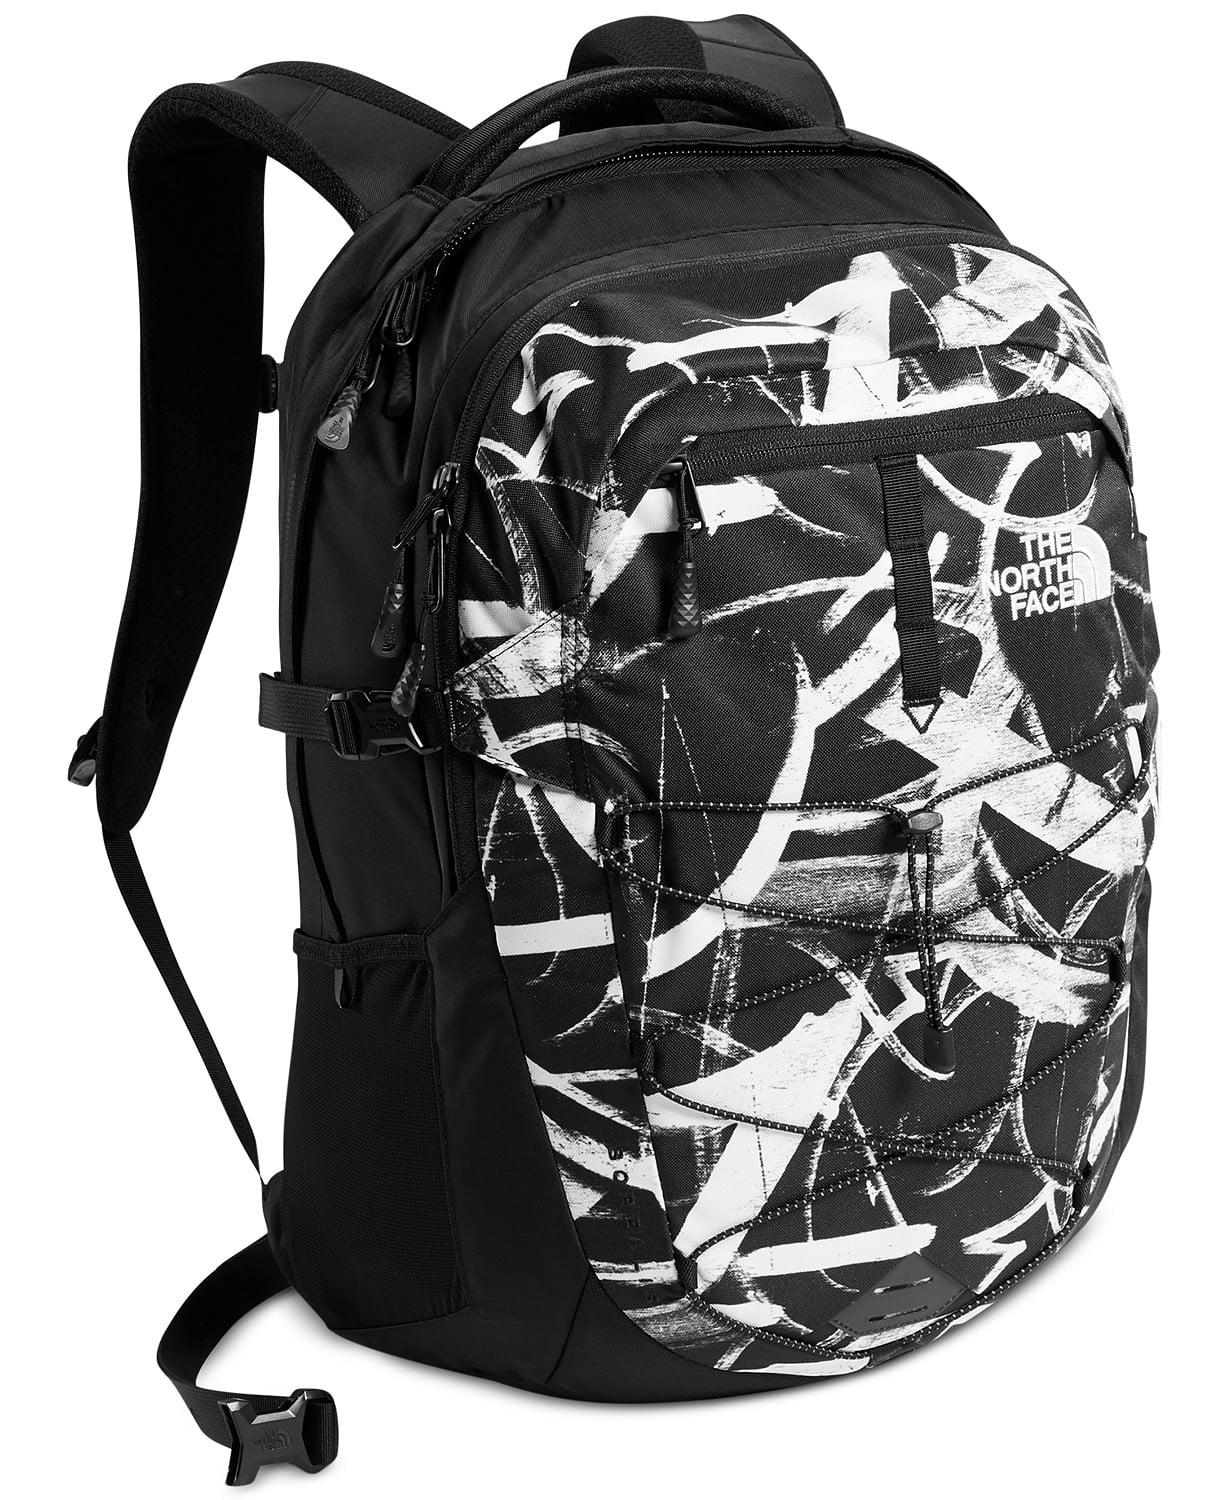 f0a6bfb74804 The North Face Men's Borealis Backpack (Black/White) - Slickdeals.net